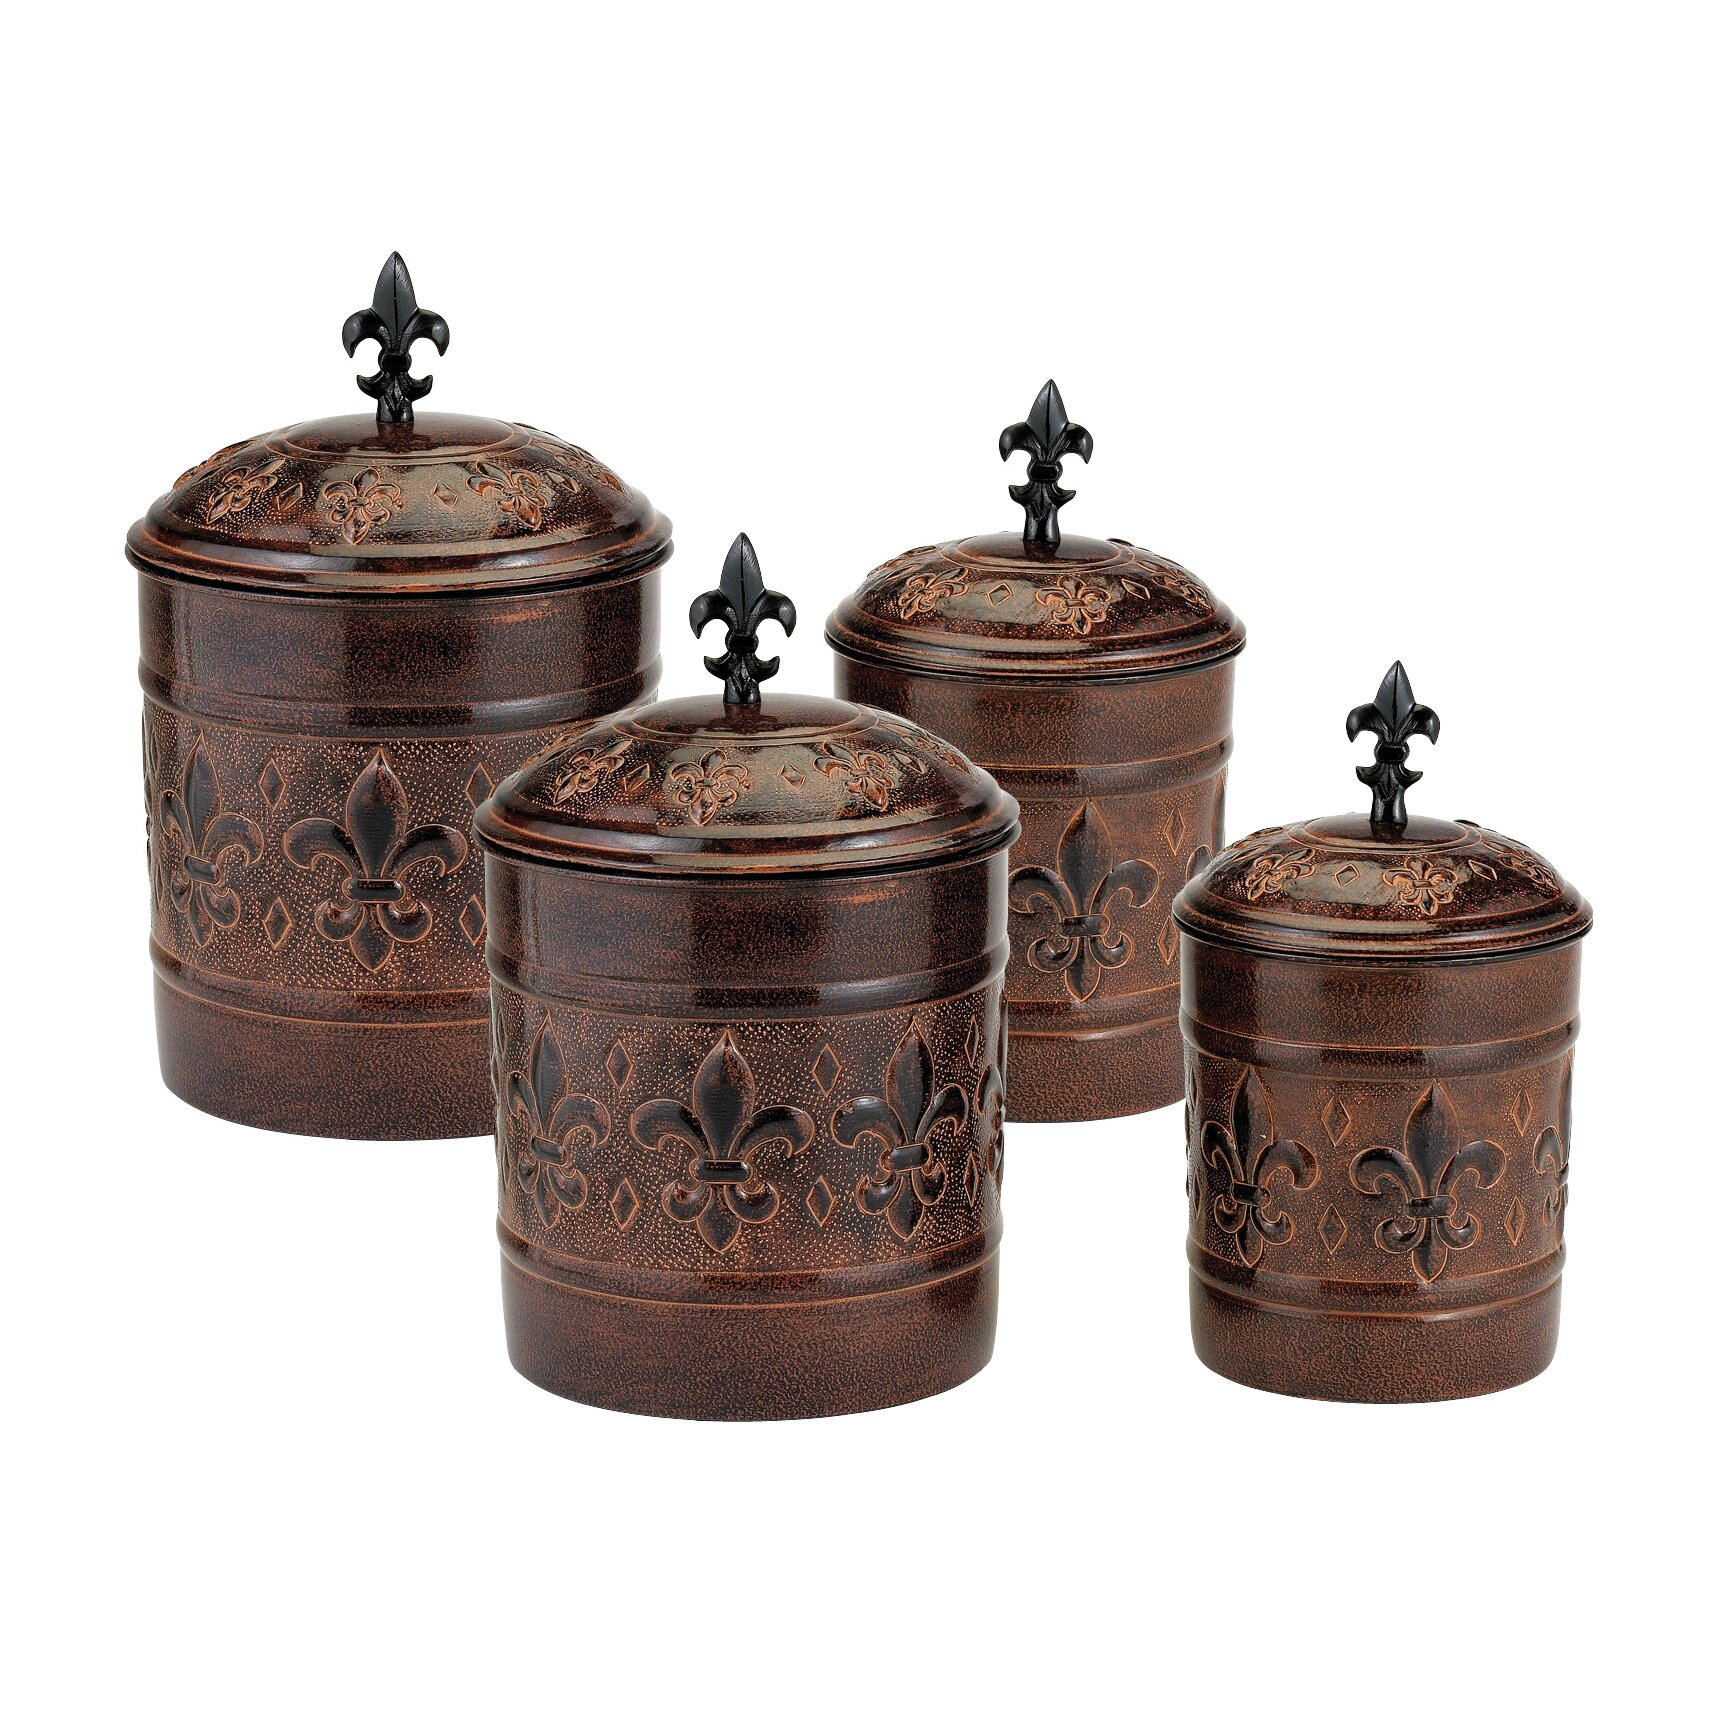 old dutch versailles 4 piece decorative canister set decorative kitchen canisters and jars